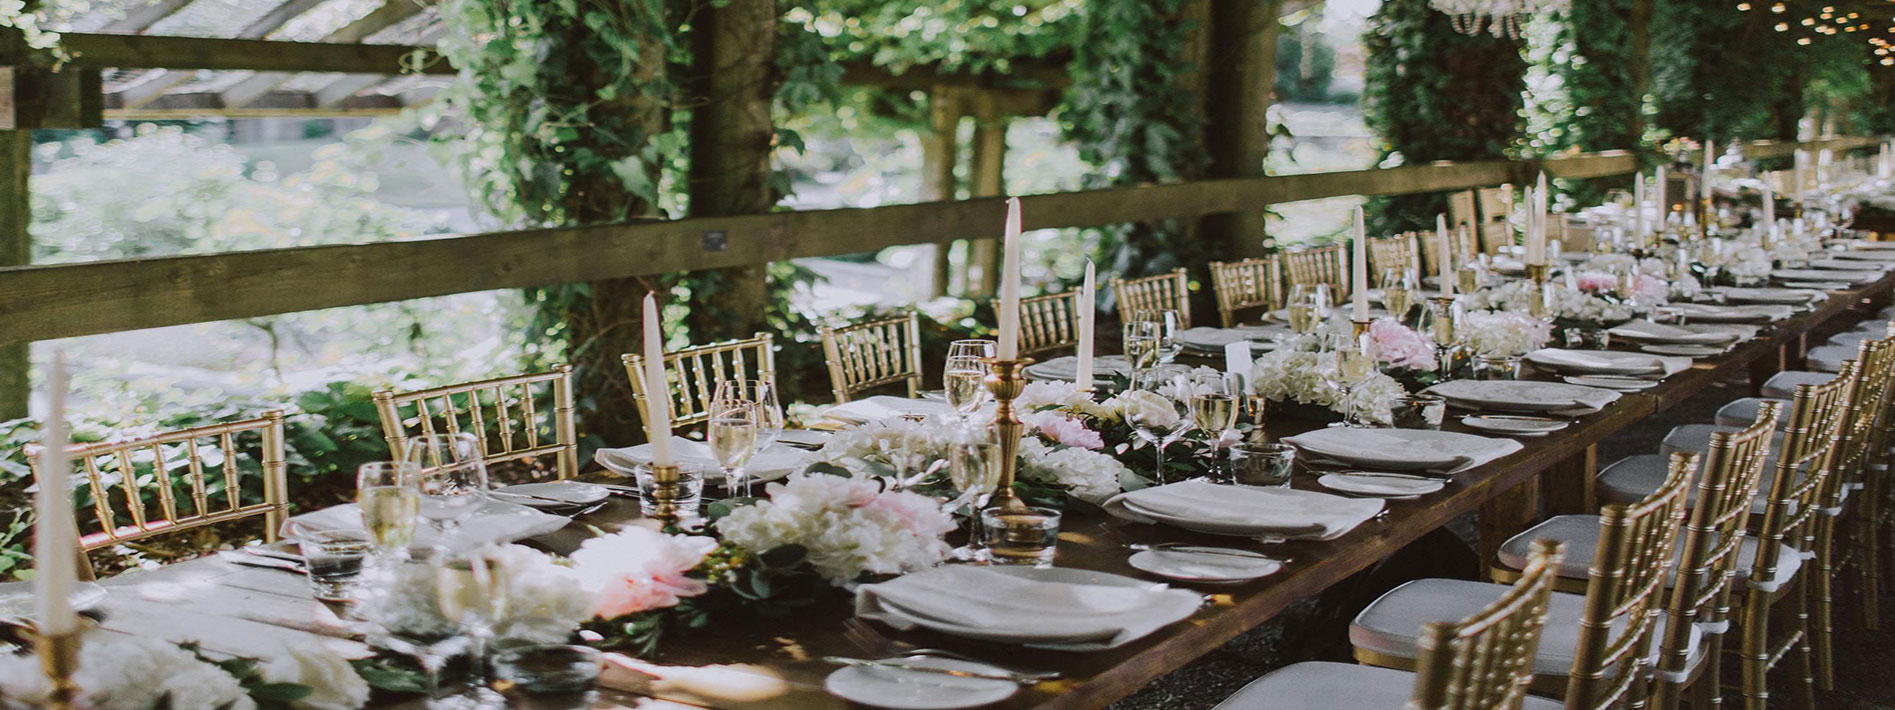 Find your perfect Wedding Vendor